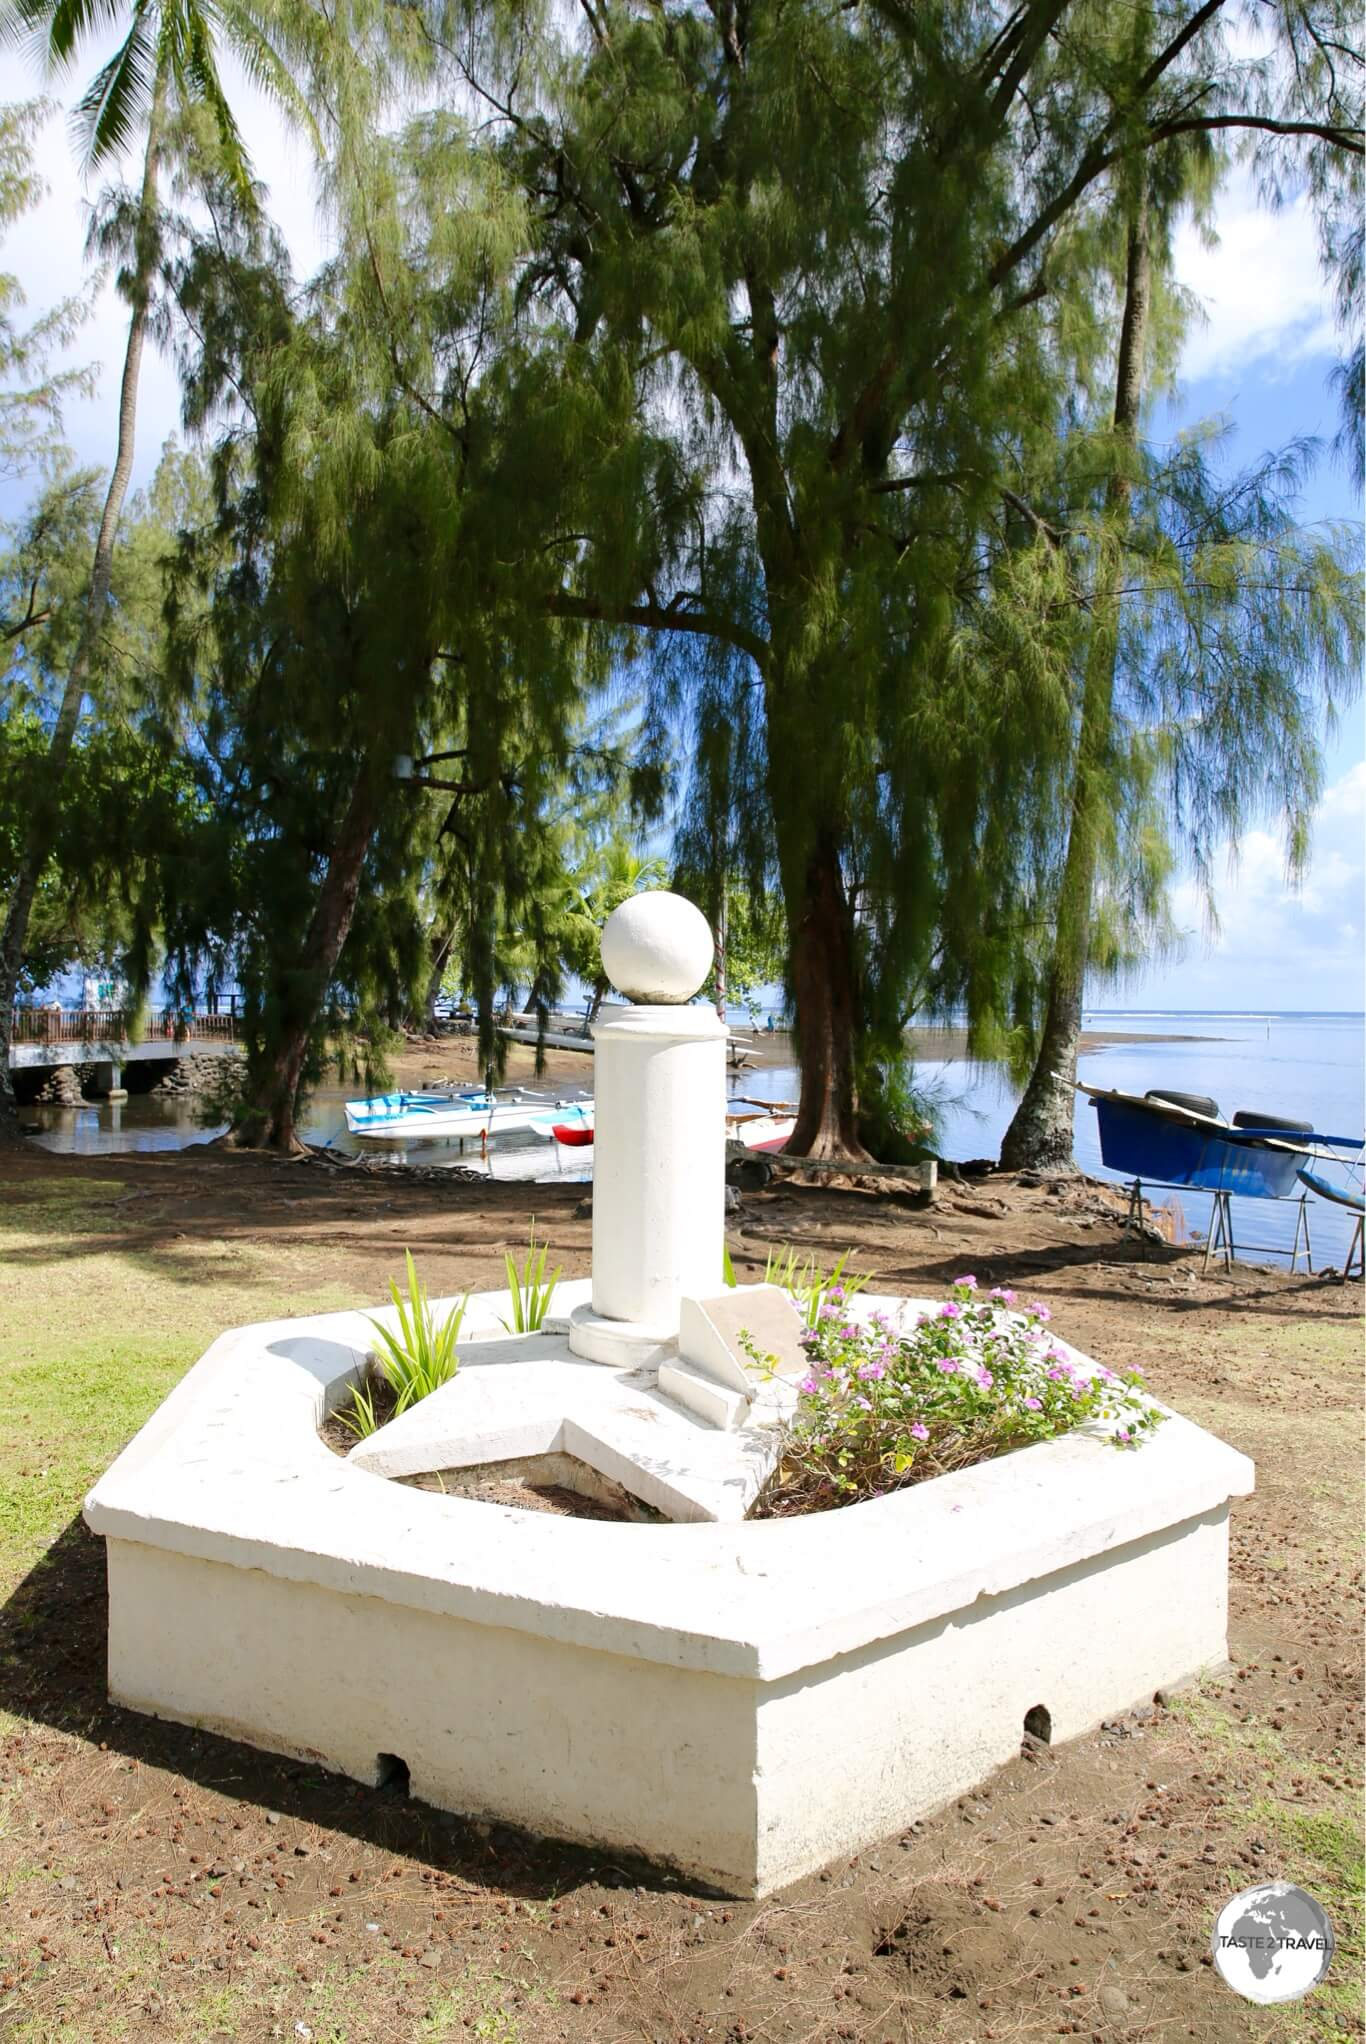 A marker at Venus Point commemorates the visit by Captain James Cook in 1769.